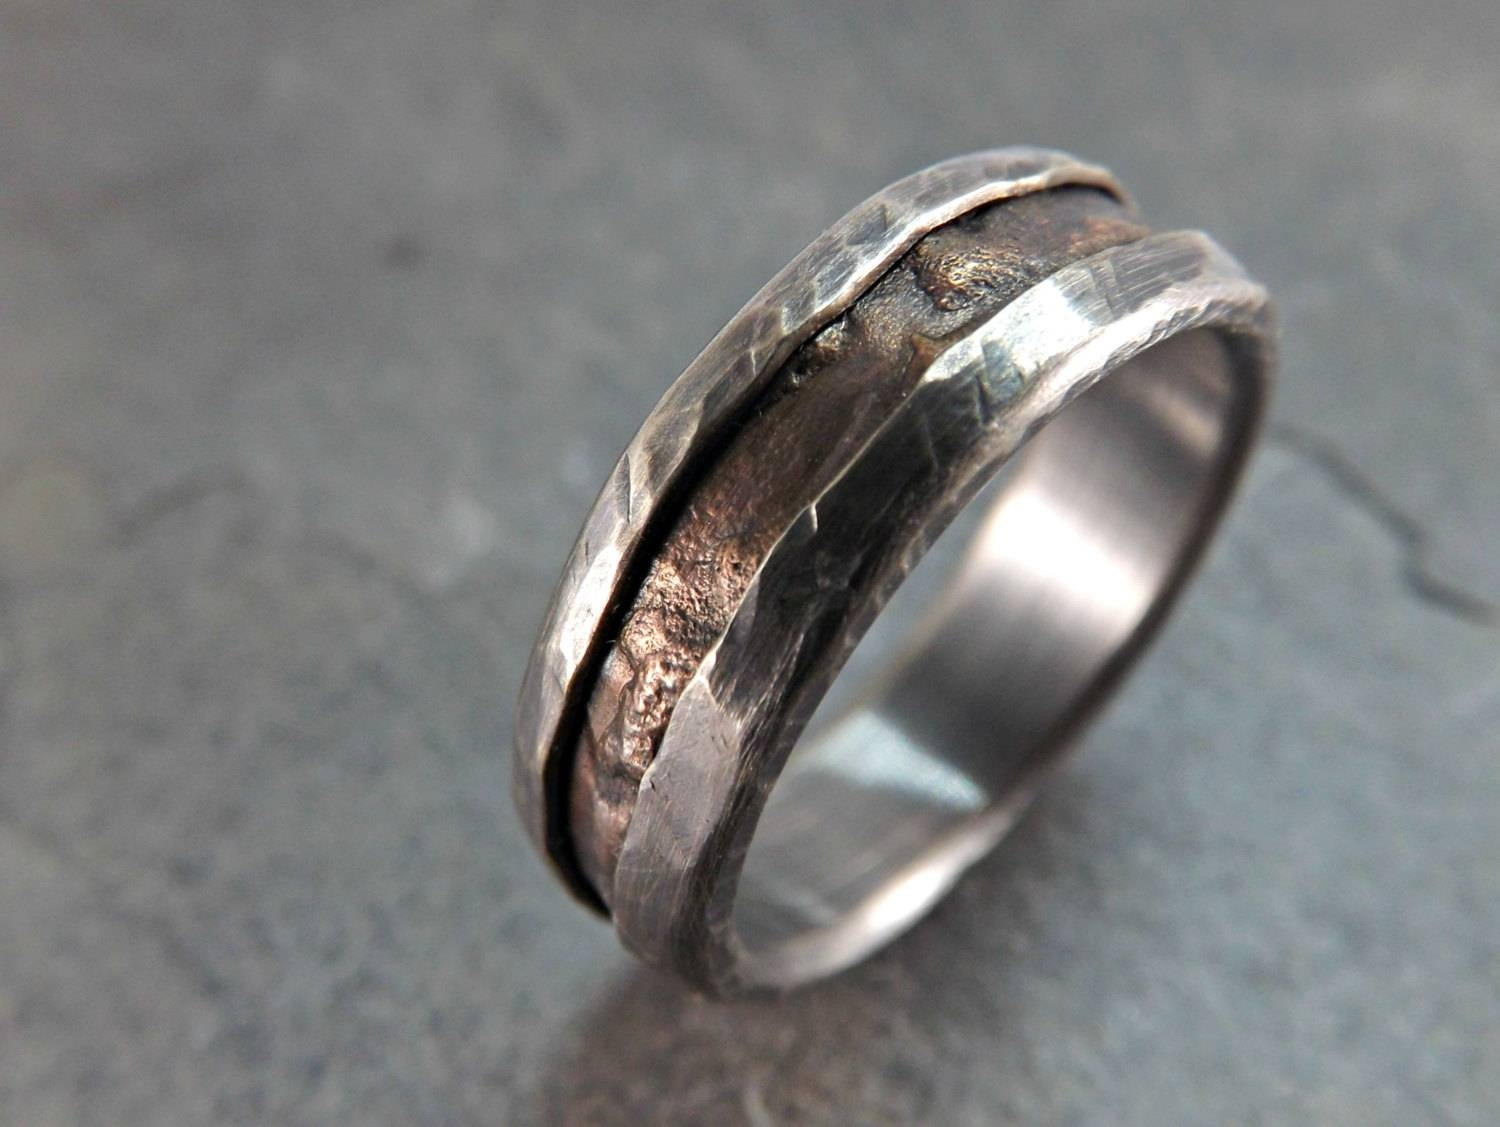 Wedding Rings : Wedding Rings For Guys Curious Cool Wedding Rings Within Cool Wedding Bands For Guys (View 12 of 15)